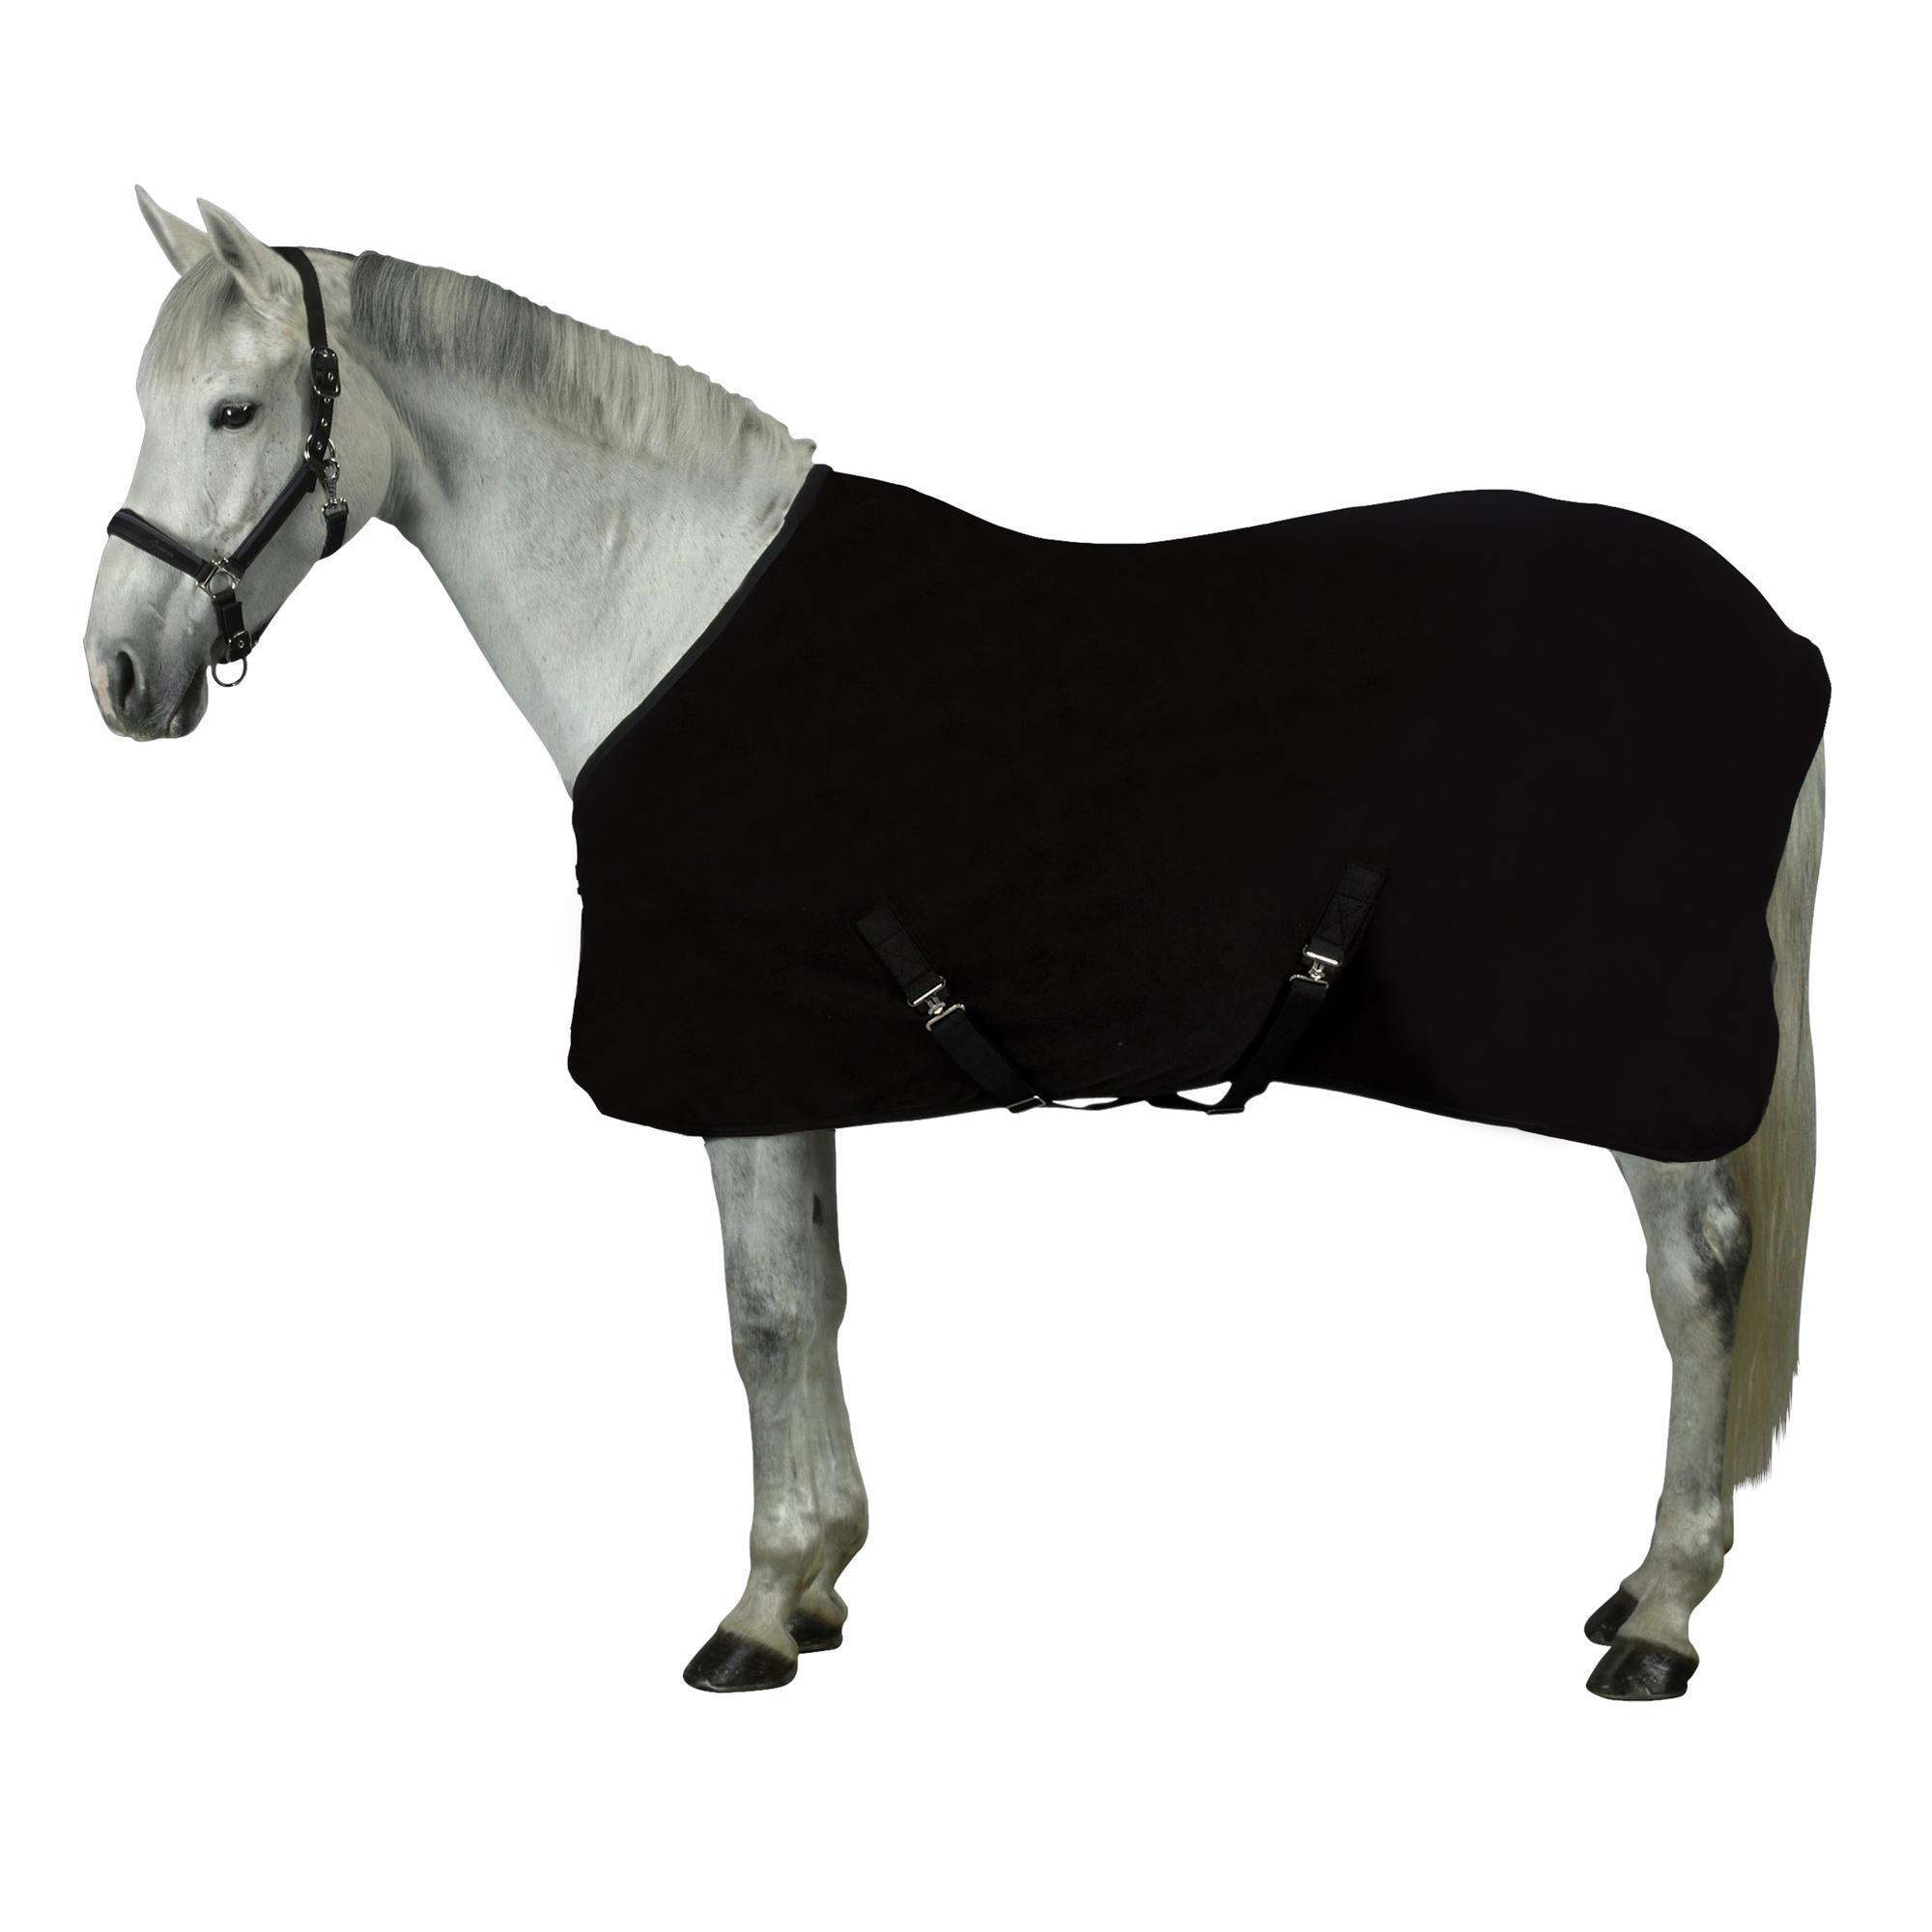 Polar 200 Horse Riding Horse Pony Stable Rug Black